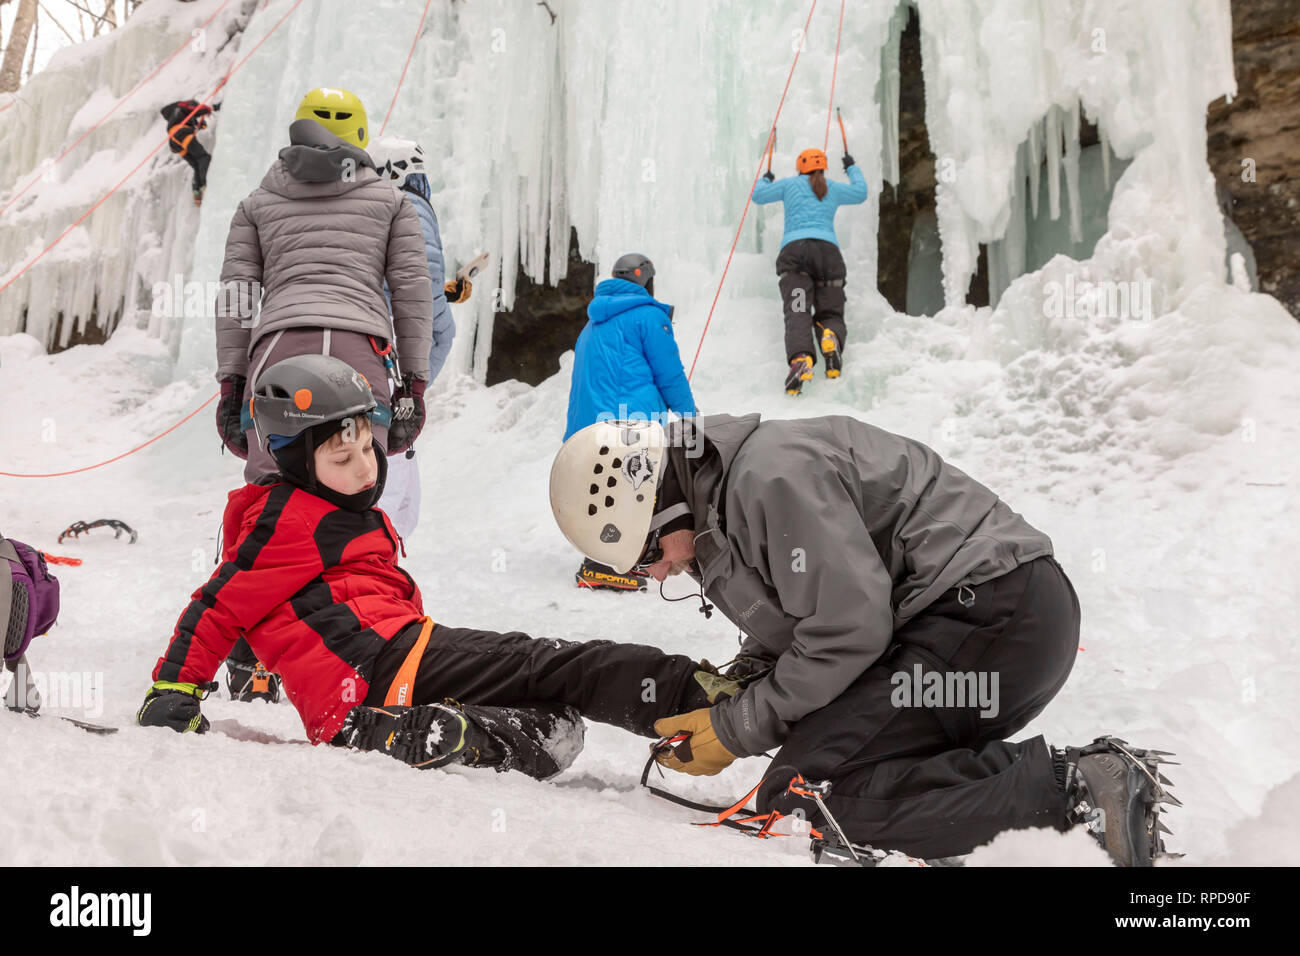 Munising, Michigan - A boy gets help in fitting crampons before climbing an ice wall during the annual Michigan Ice Fest. Participants climbed frozen  - Stock Image